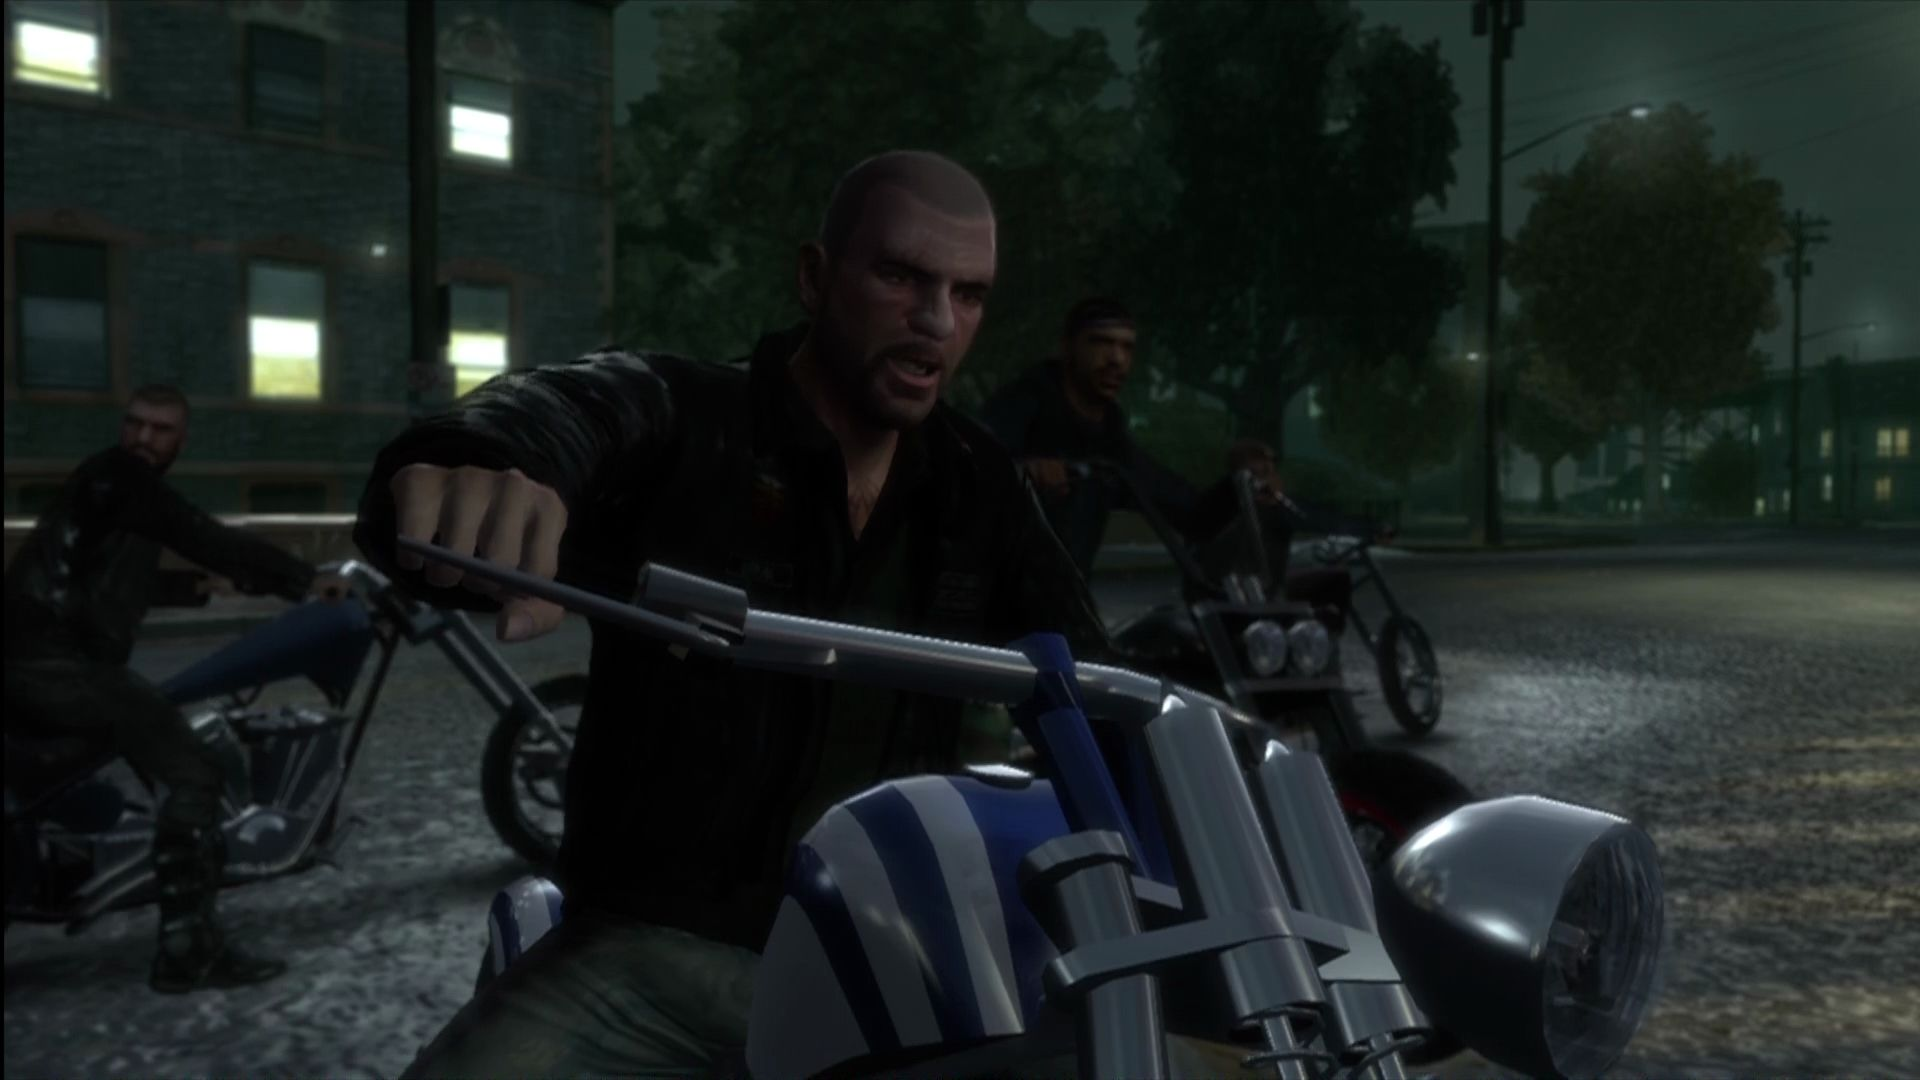 Grand Theft Auto IV: The Lost and Damned Xbox 360 Johnny Klebitz, VP of The Lost Motorcycle Club.